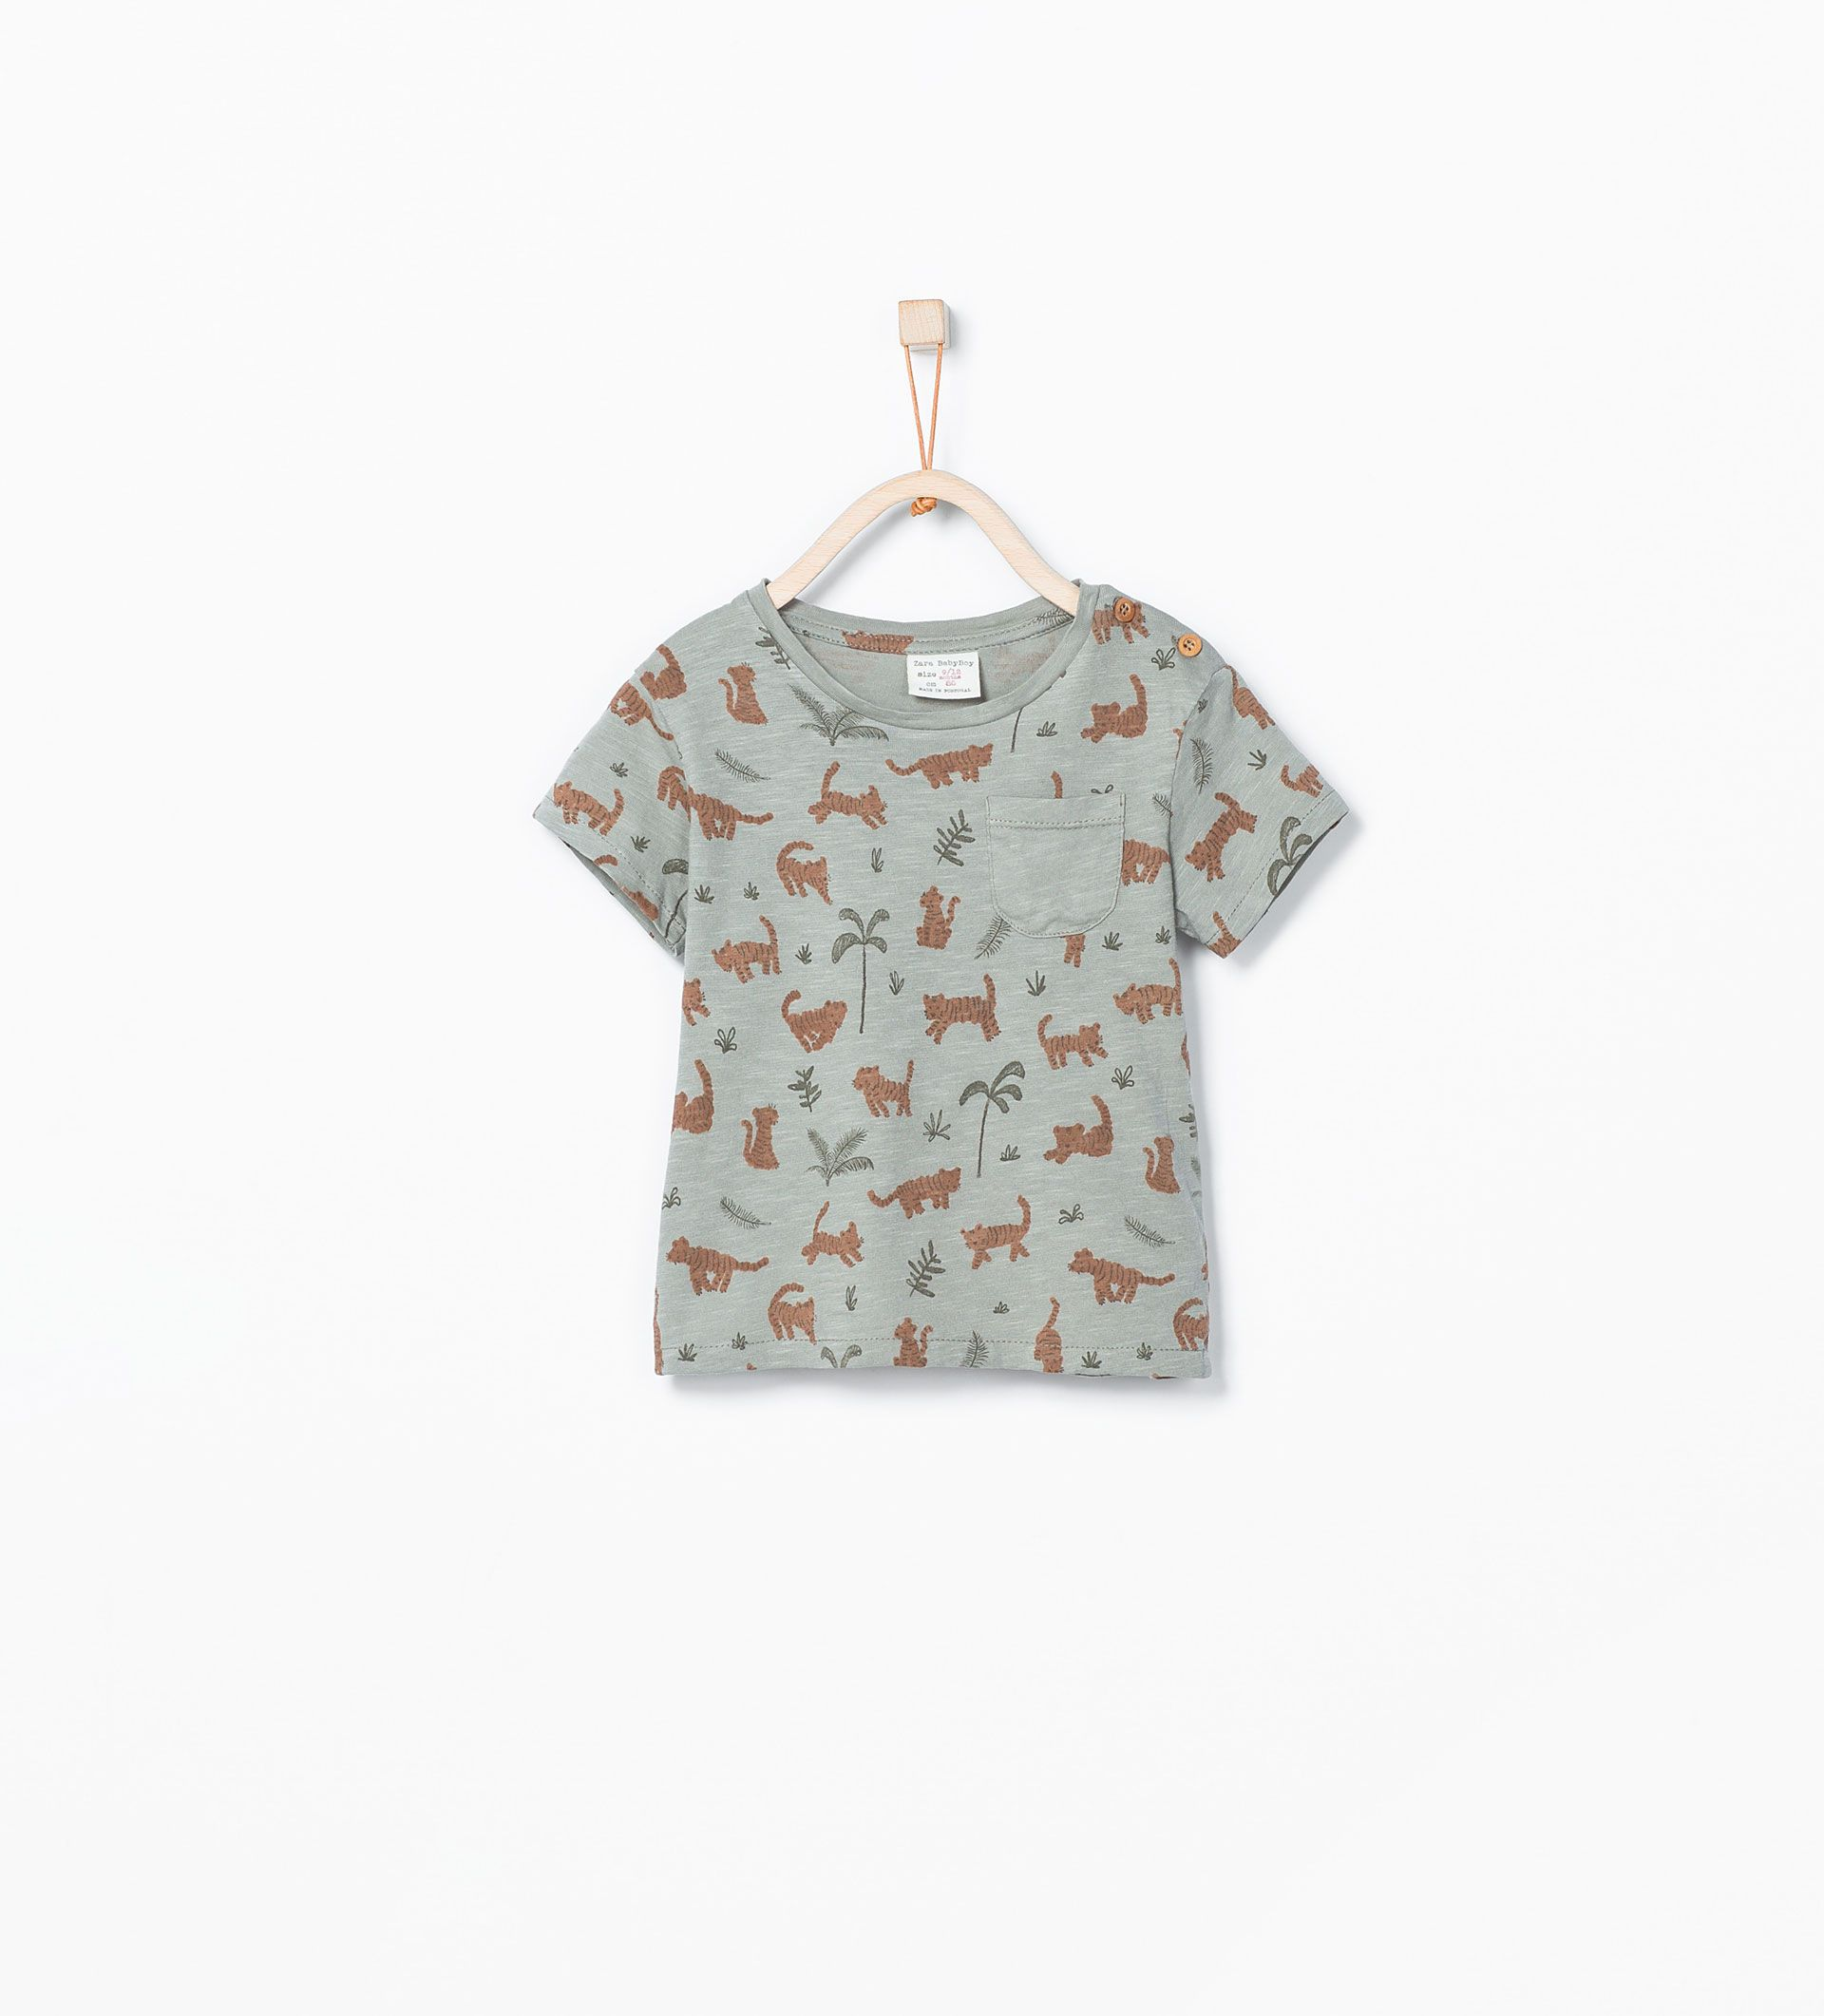 ZARA - KIDS - Animal print t-shirt